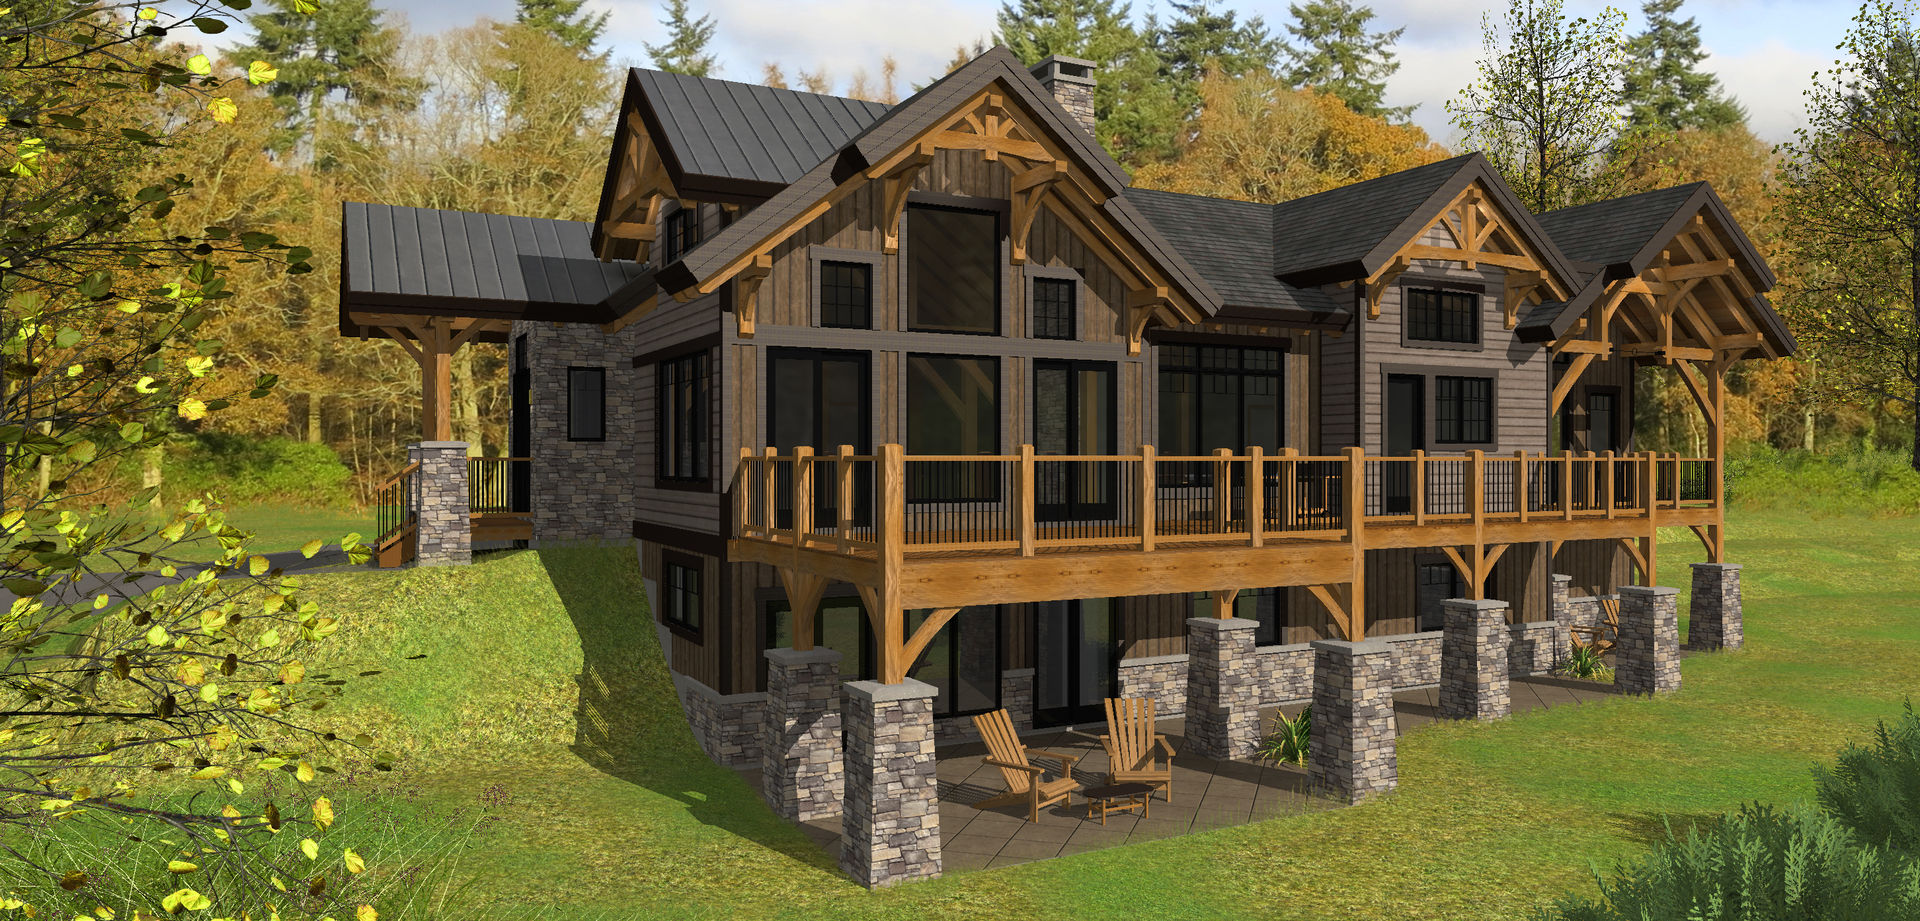 Money%20Shot%20 %20Bear%20Rock - 26+ Two Storey Small Wooden House Design Pictures